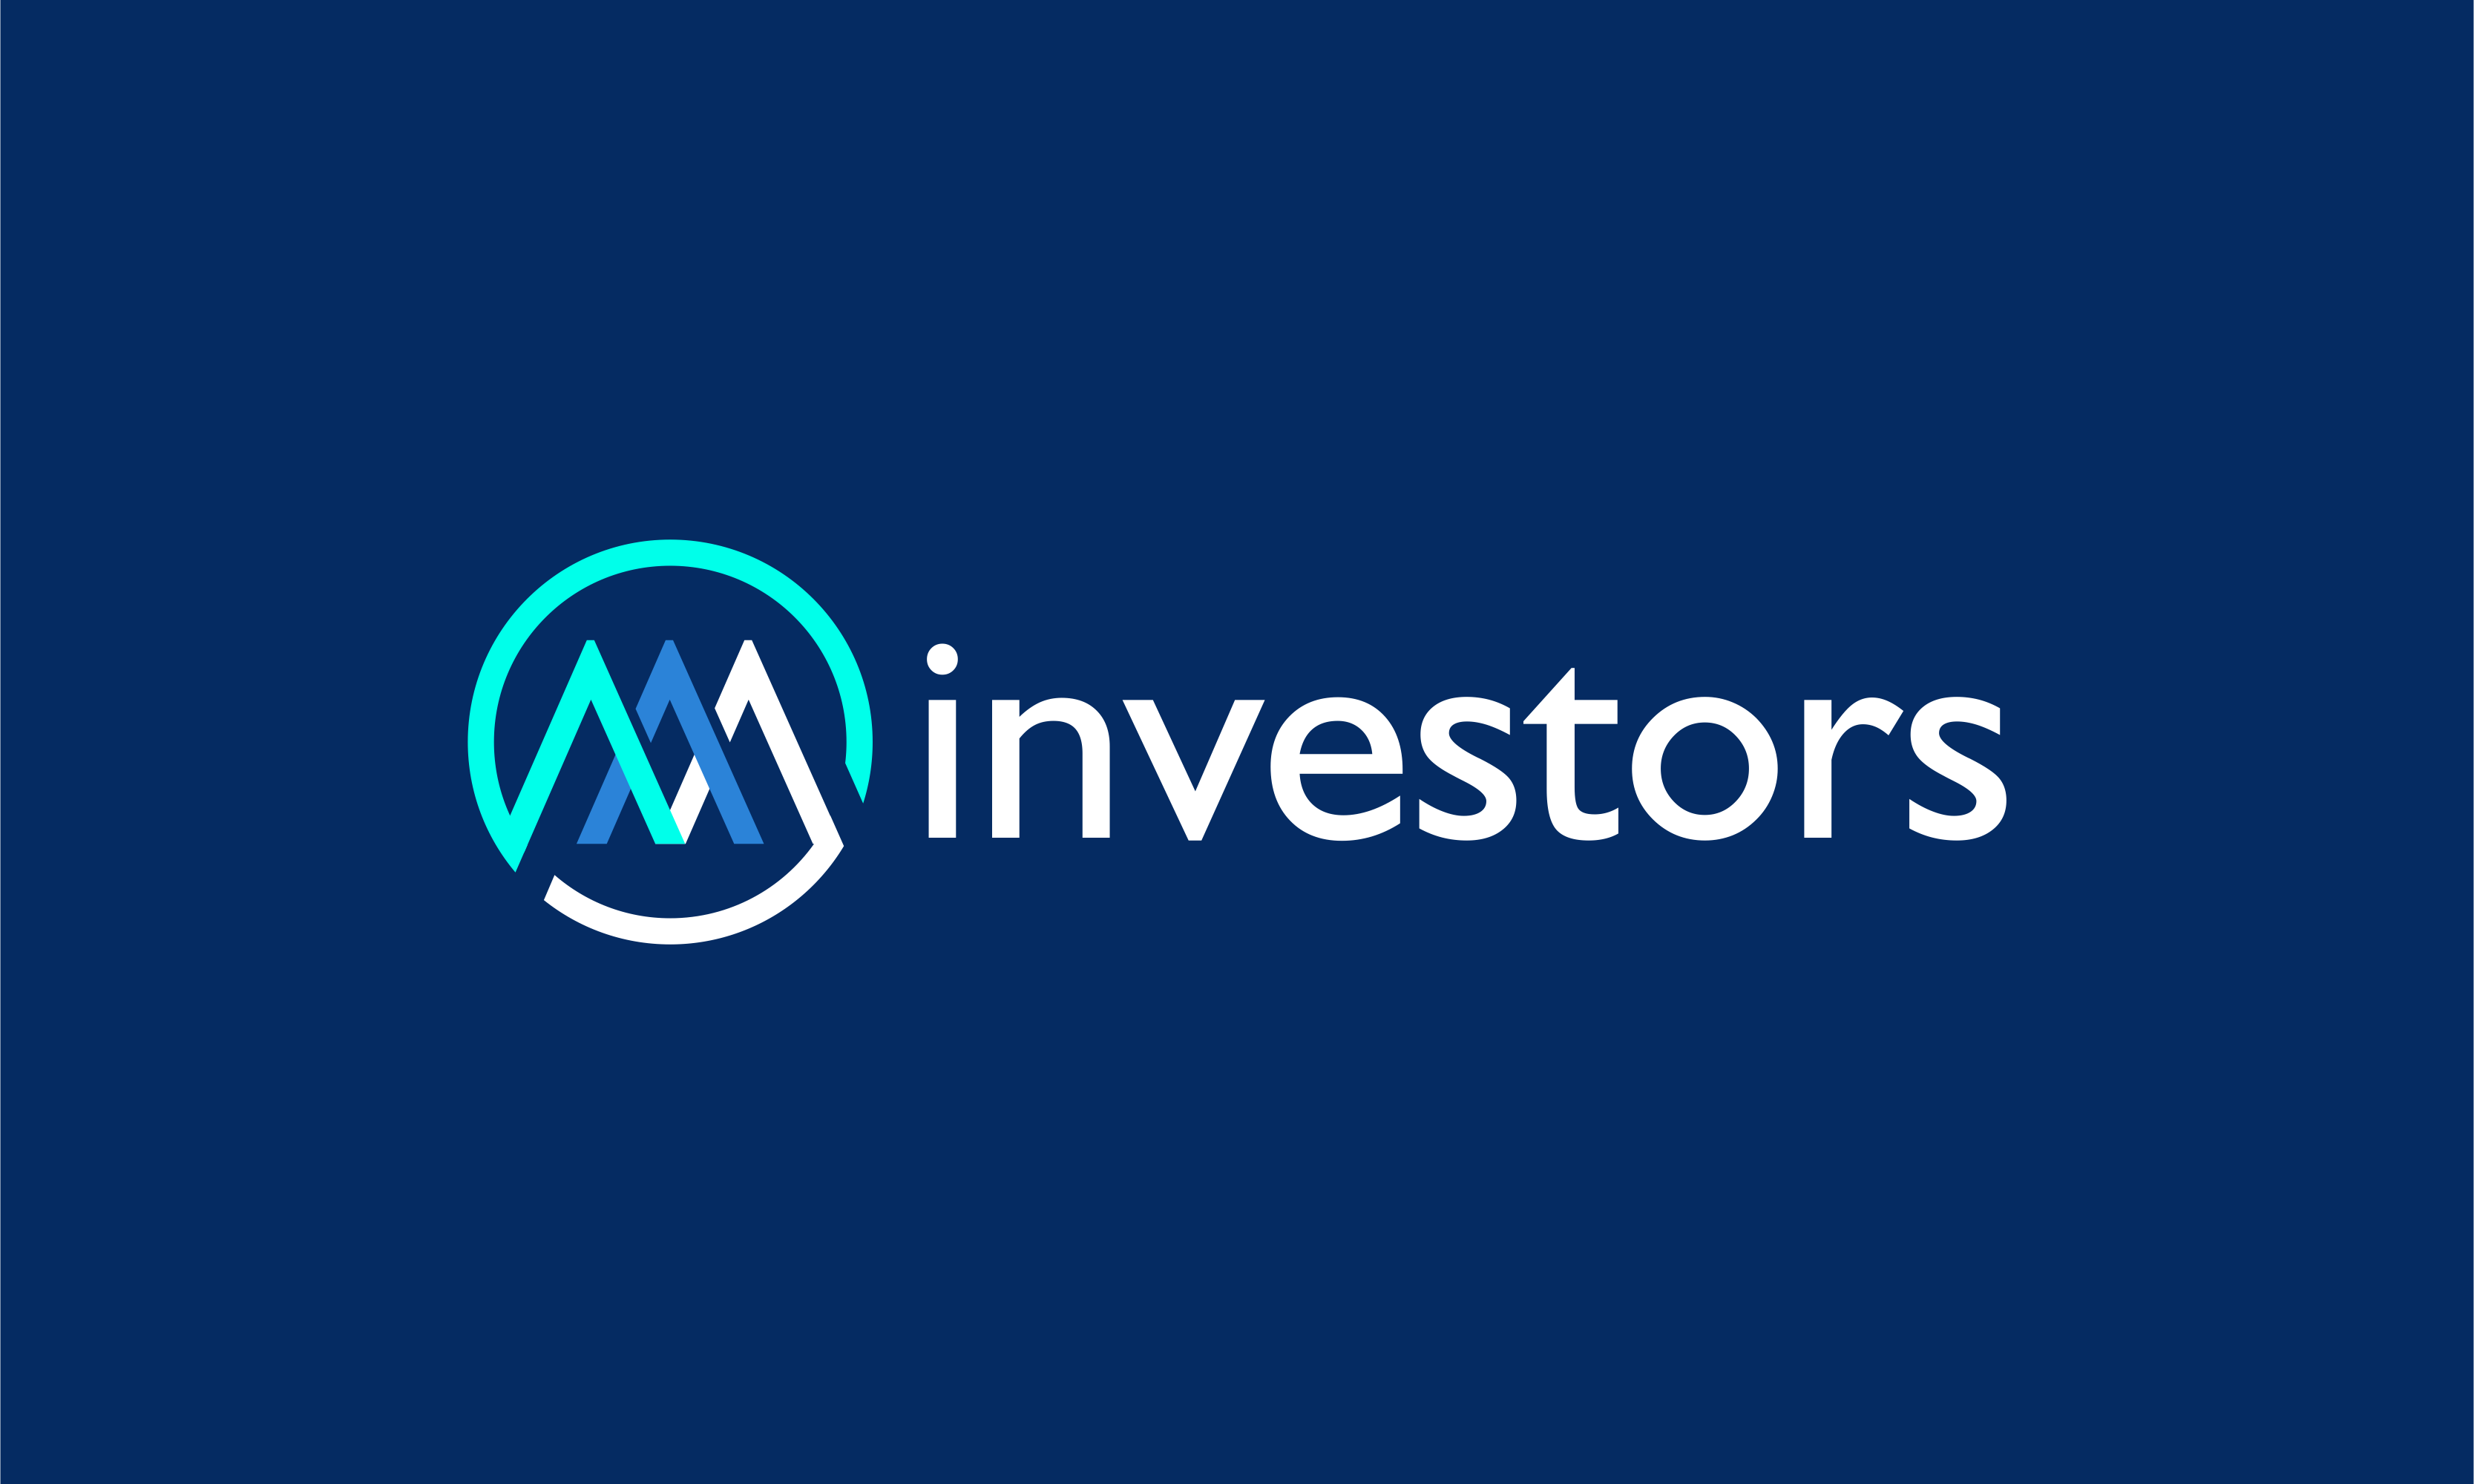 Aaainvestors - Business business name for sale